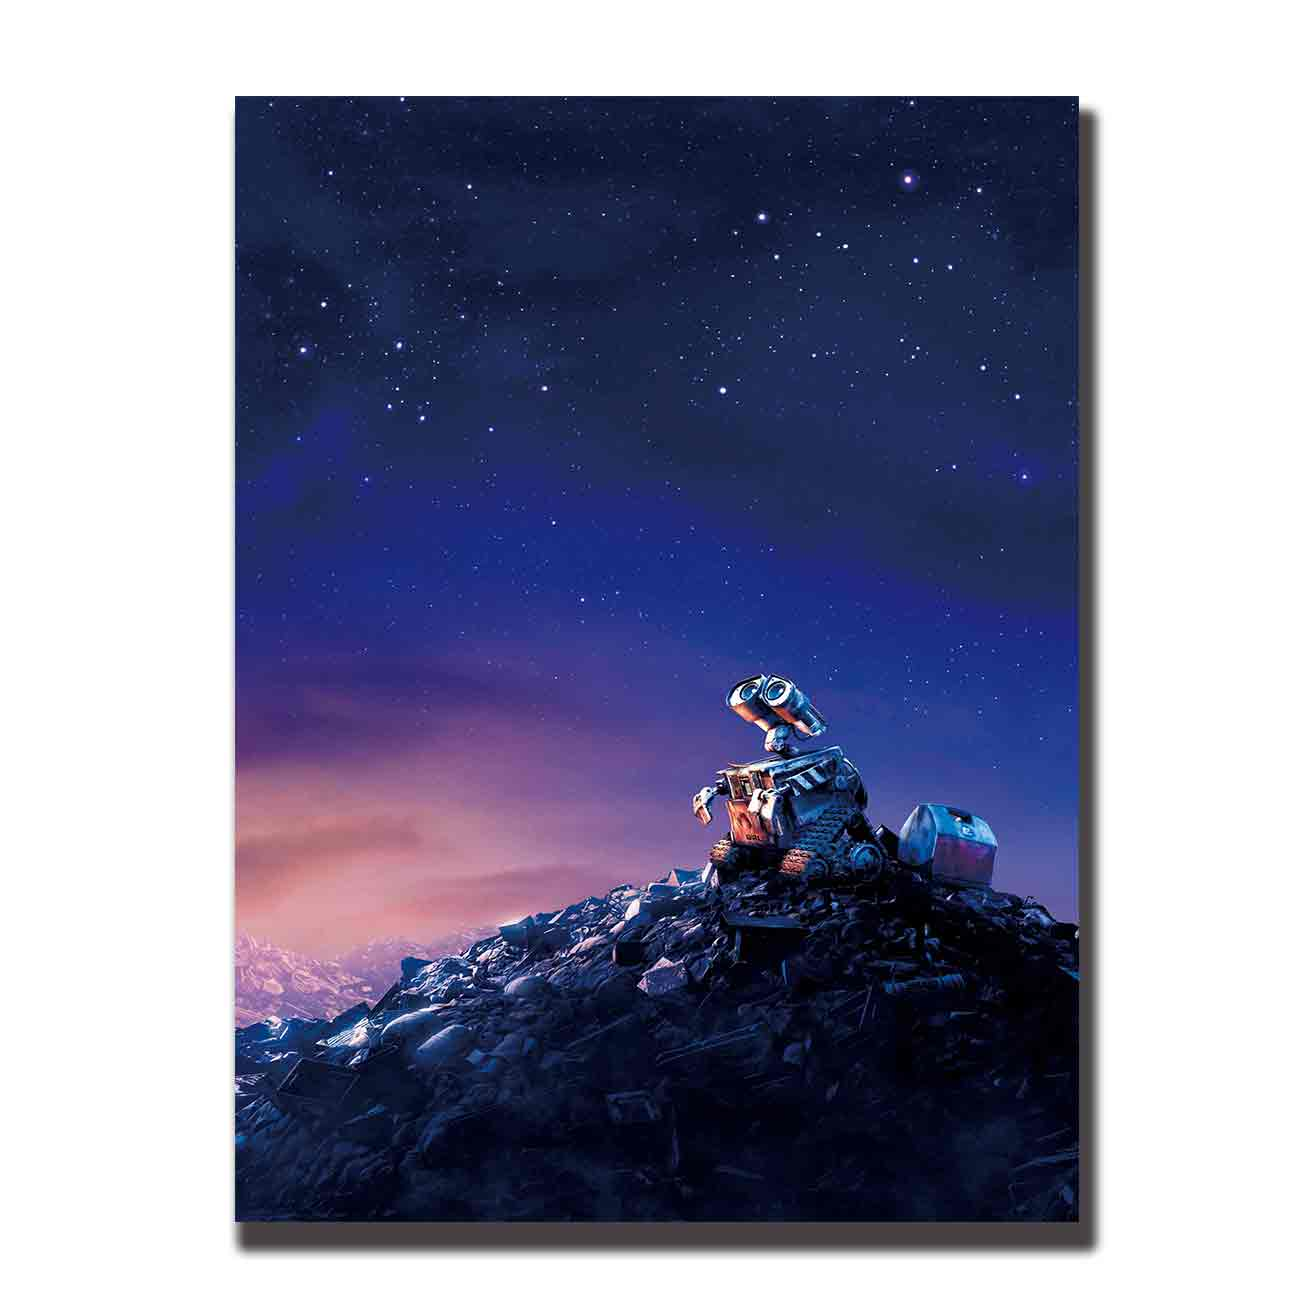 Art silk Poster wall e 2008 12x18 24x36 27x40 Wall Canvas Print Modern Decoration painting pictures image